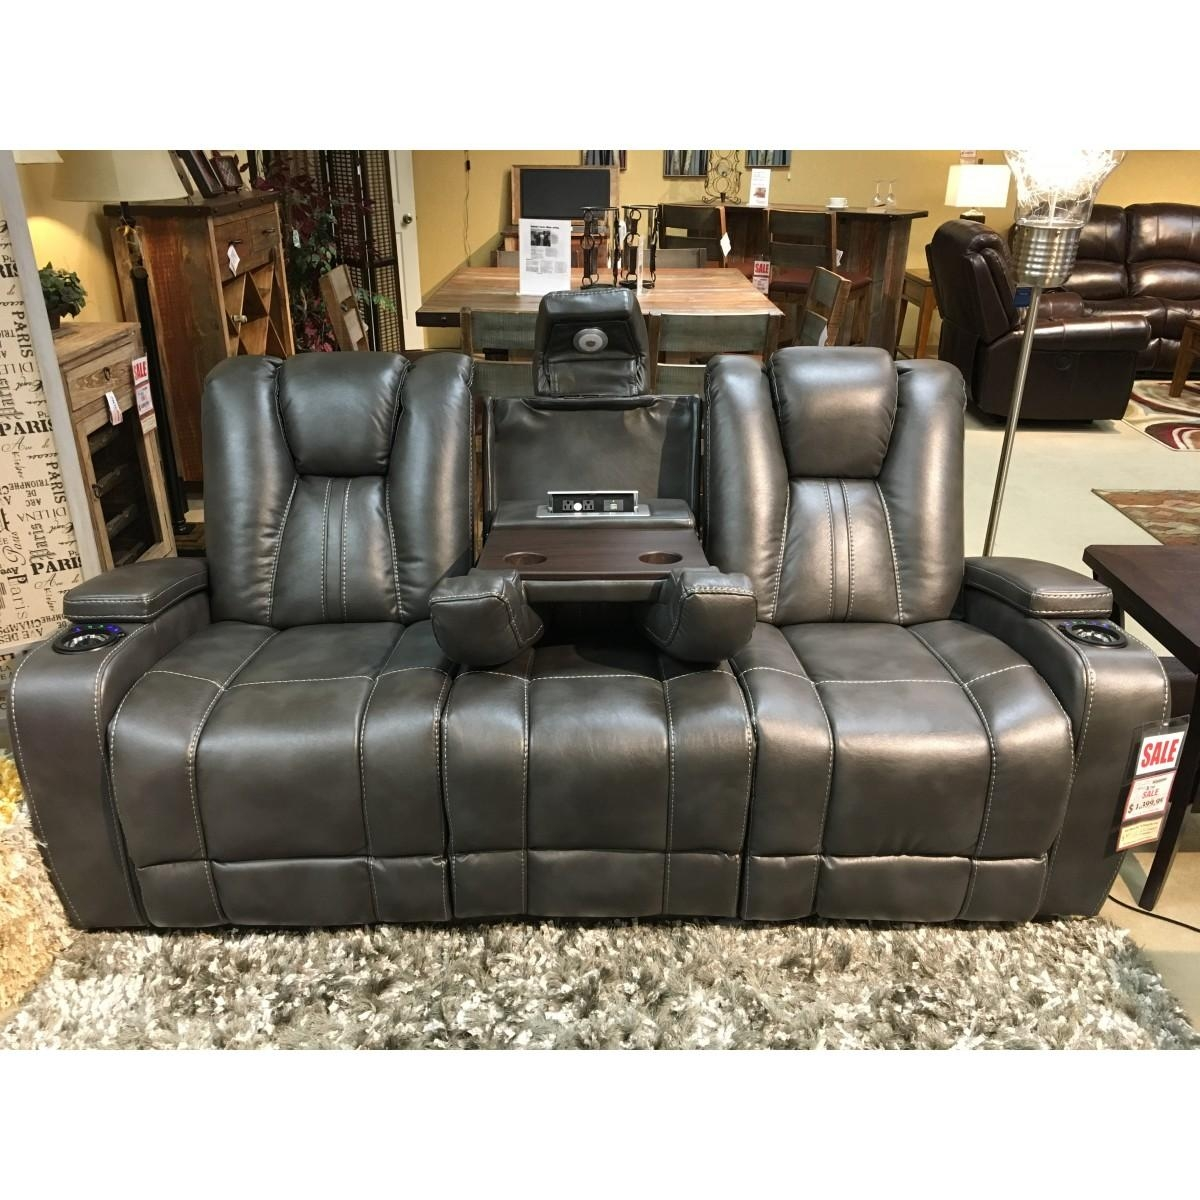 Furniture Bolero Slate Power Reclining Entertainment Sofa Pertaining To Cheers Recliner Sofas (Image 4 of 8)